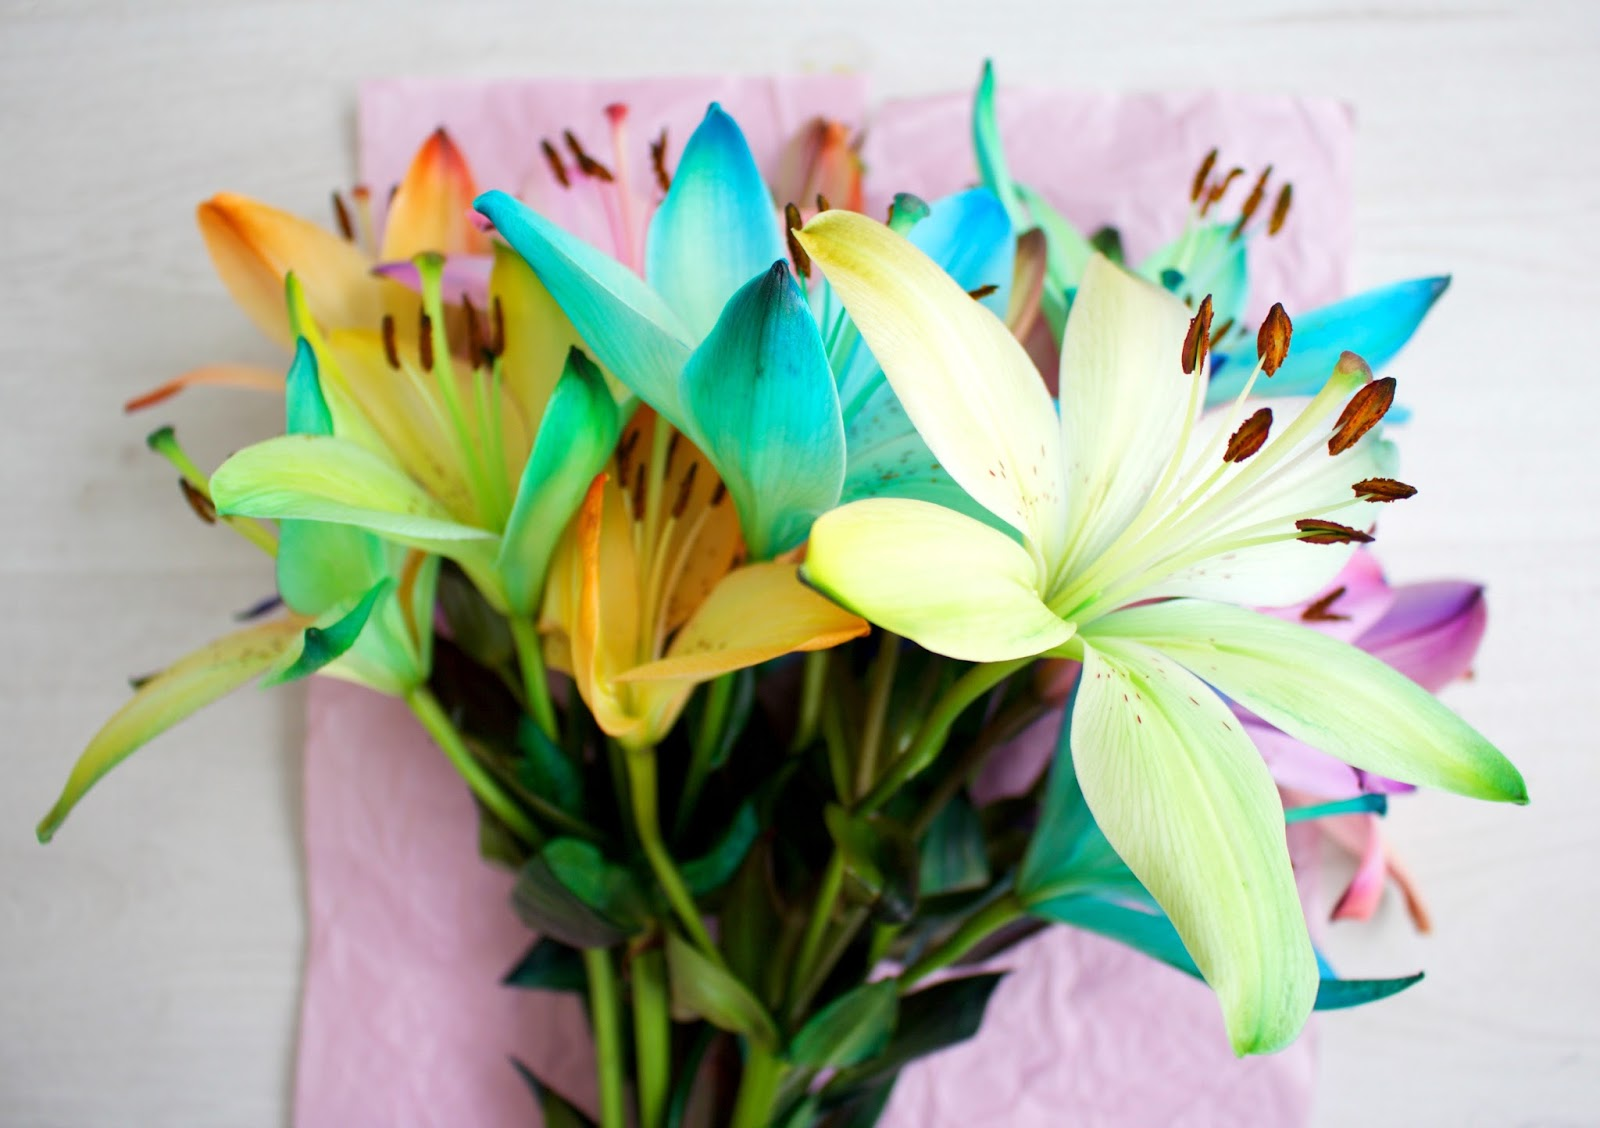 Rainbow Lilies. Blue lilies. Purple lilies. Orange lilies. Green lilies. Multi coloured lilies. spring lilies. spring flowers. Blossoming Gifts flowers. Blossom gifts rainbow lilies. Giveaway, competition. Blog competition. Blog giveaway. Product review. Flower bouquet. 100 Ways to 30, Uk life and style blog, brands, collaboration. Lily pollen.  Canon 700d photos